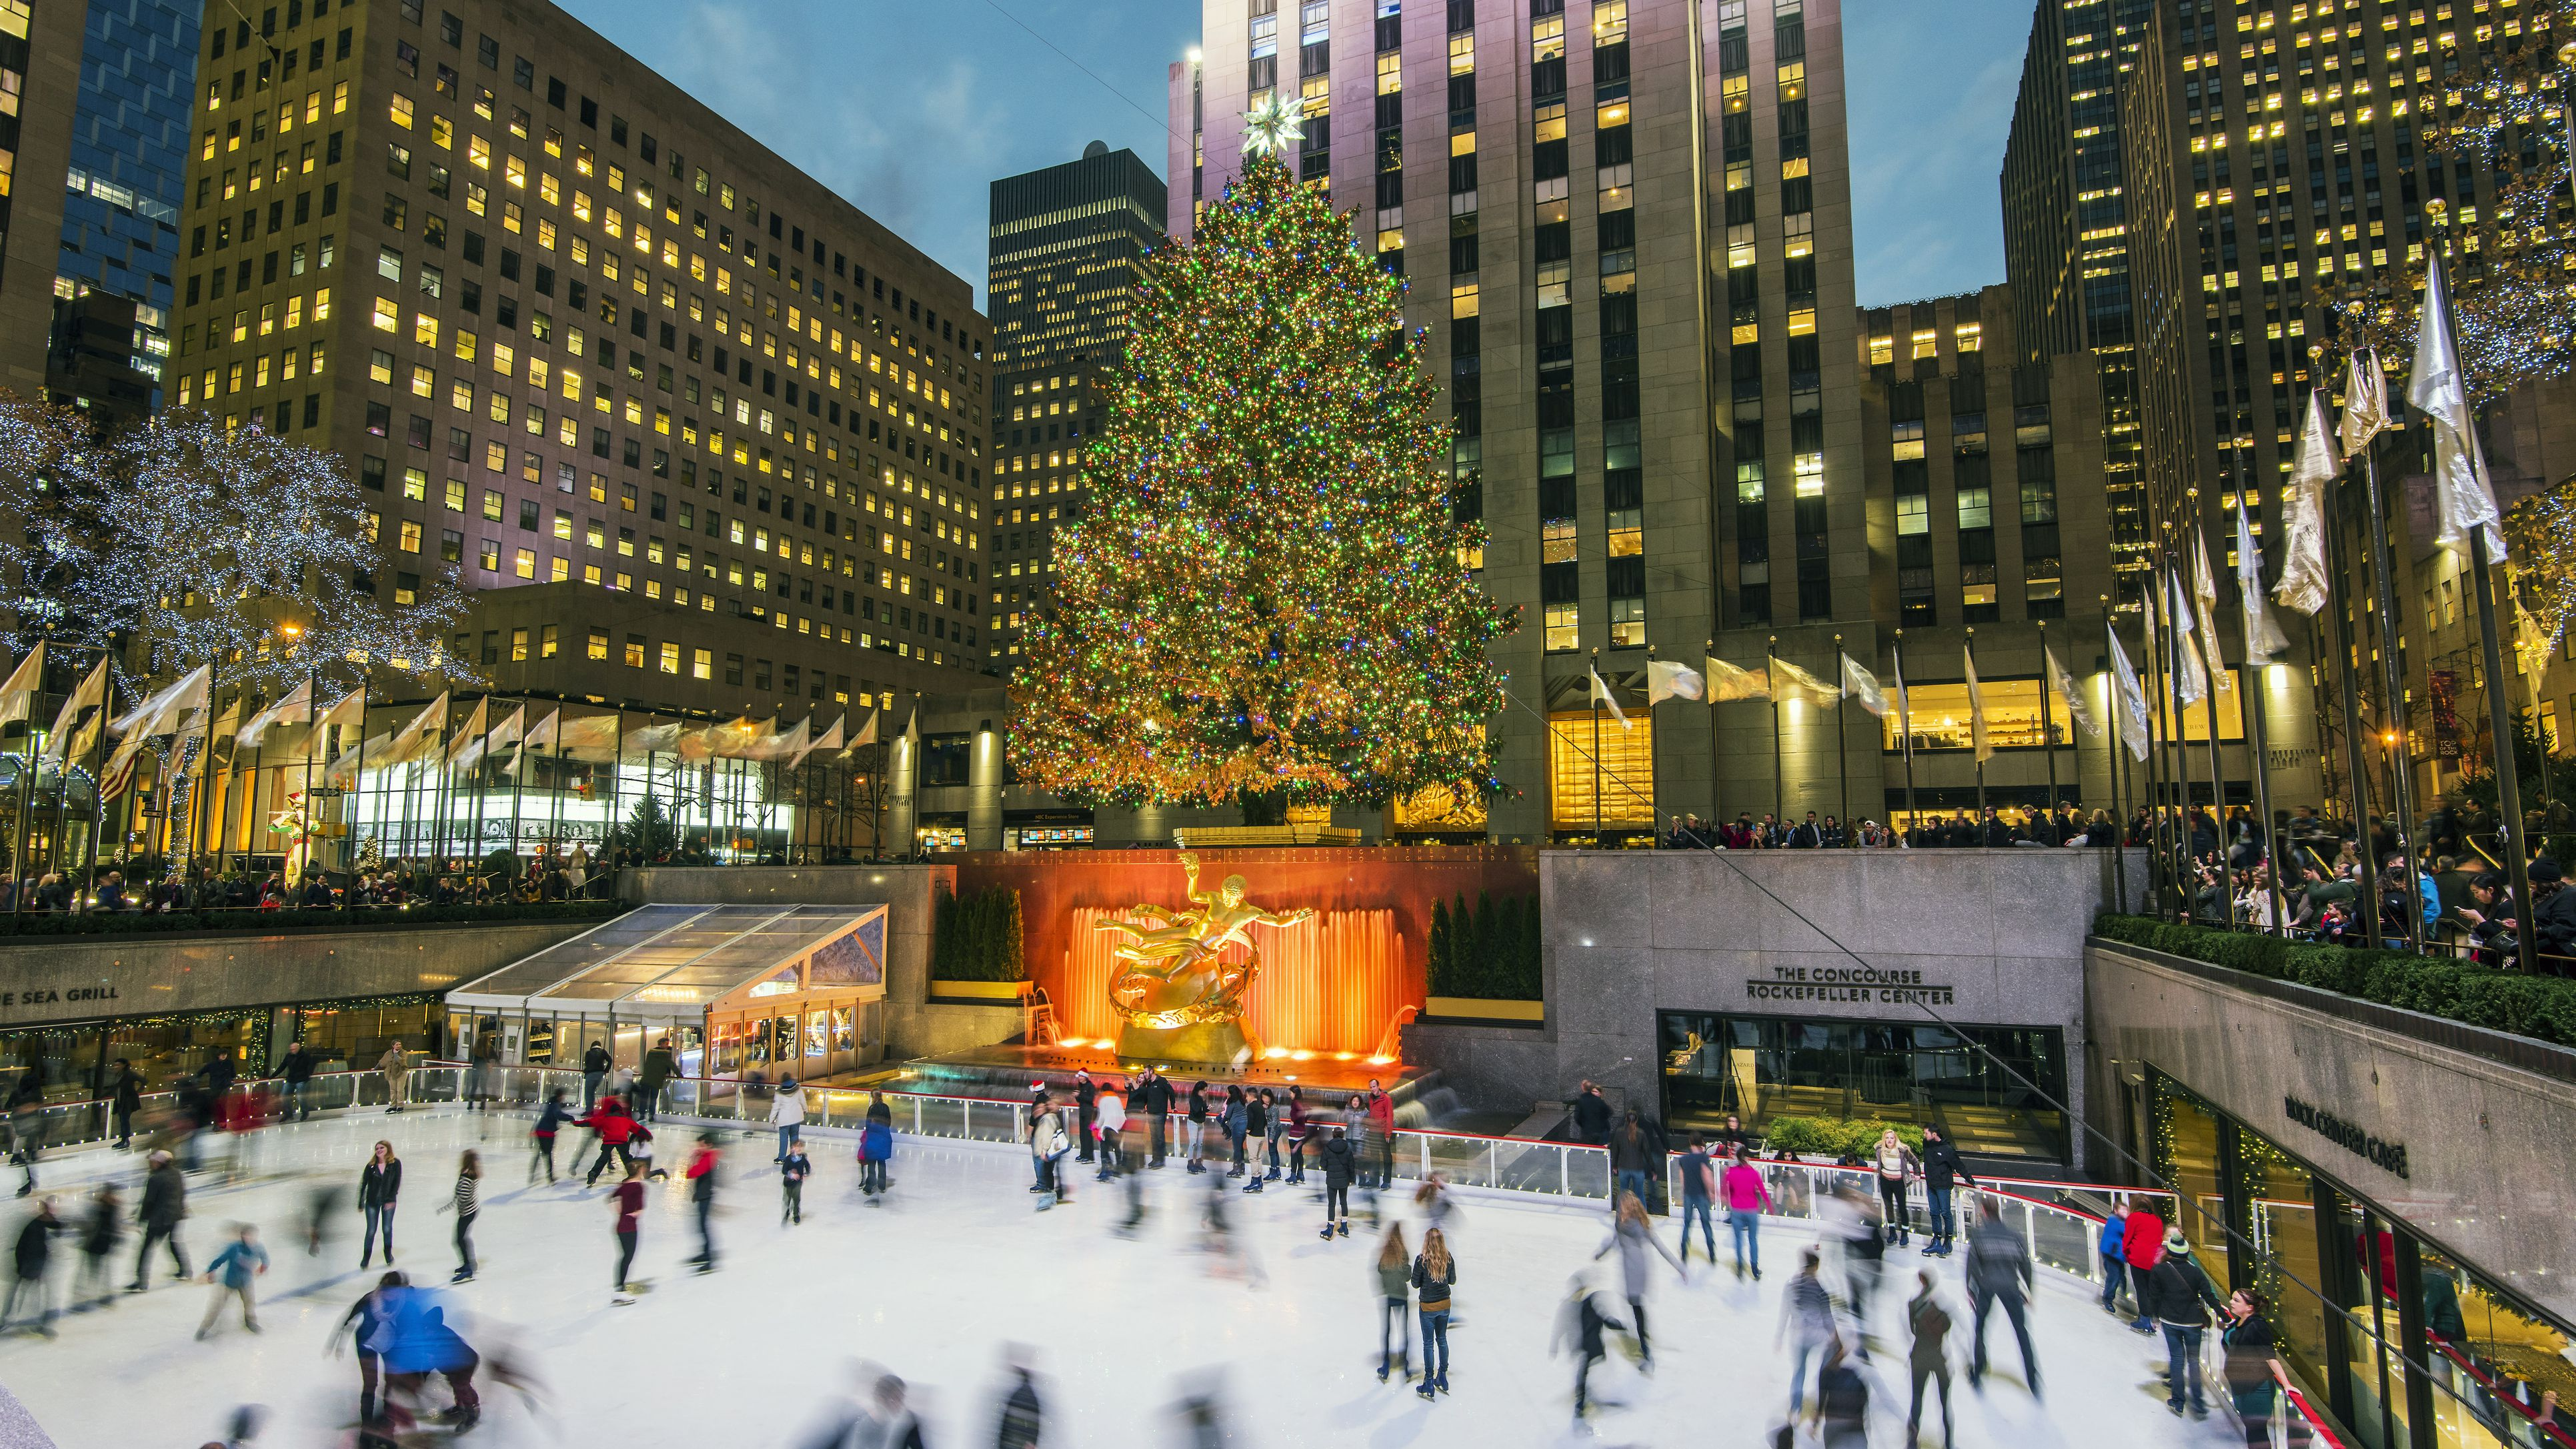 Christmas Tree In Nyc.Best Christmas Trees To See In Nyc